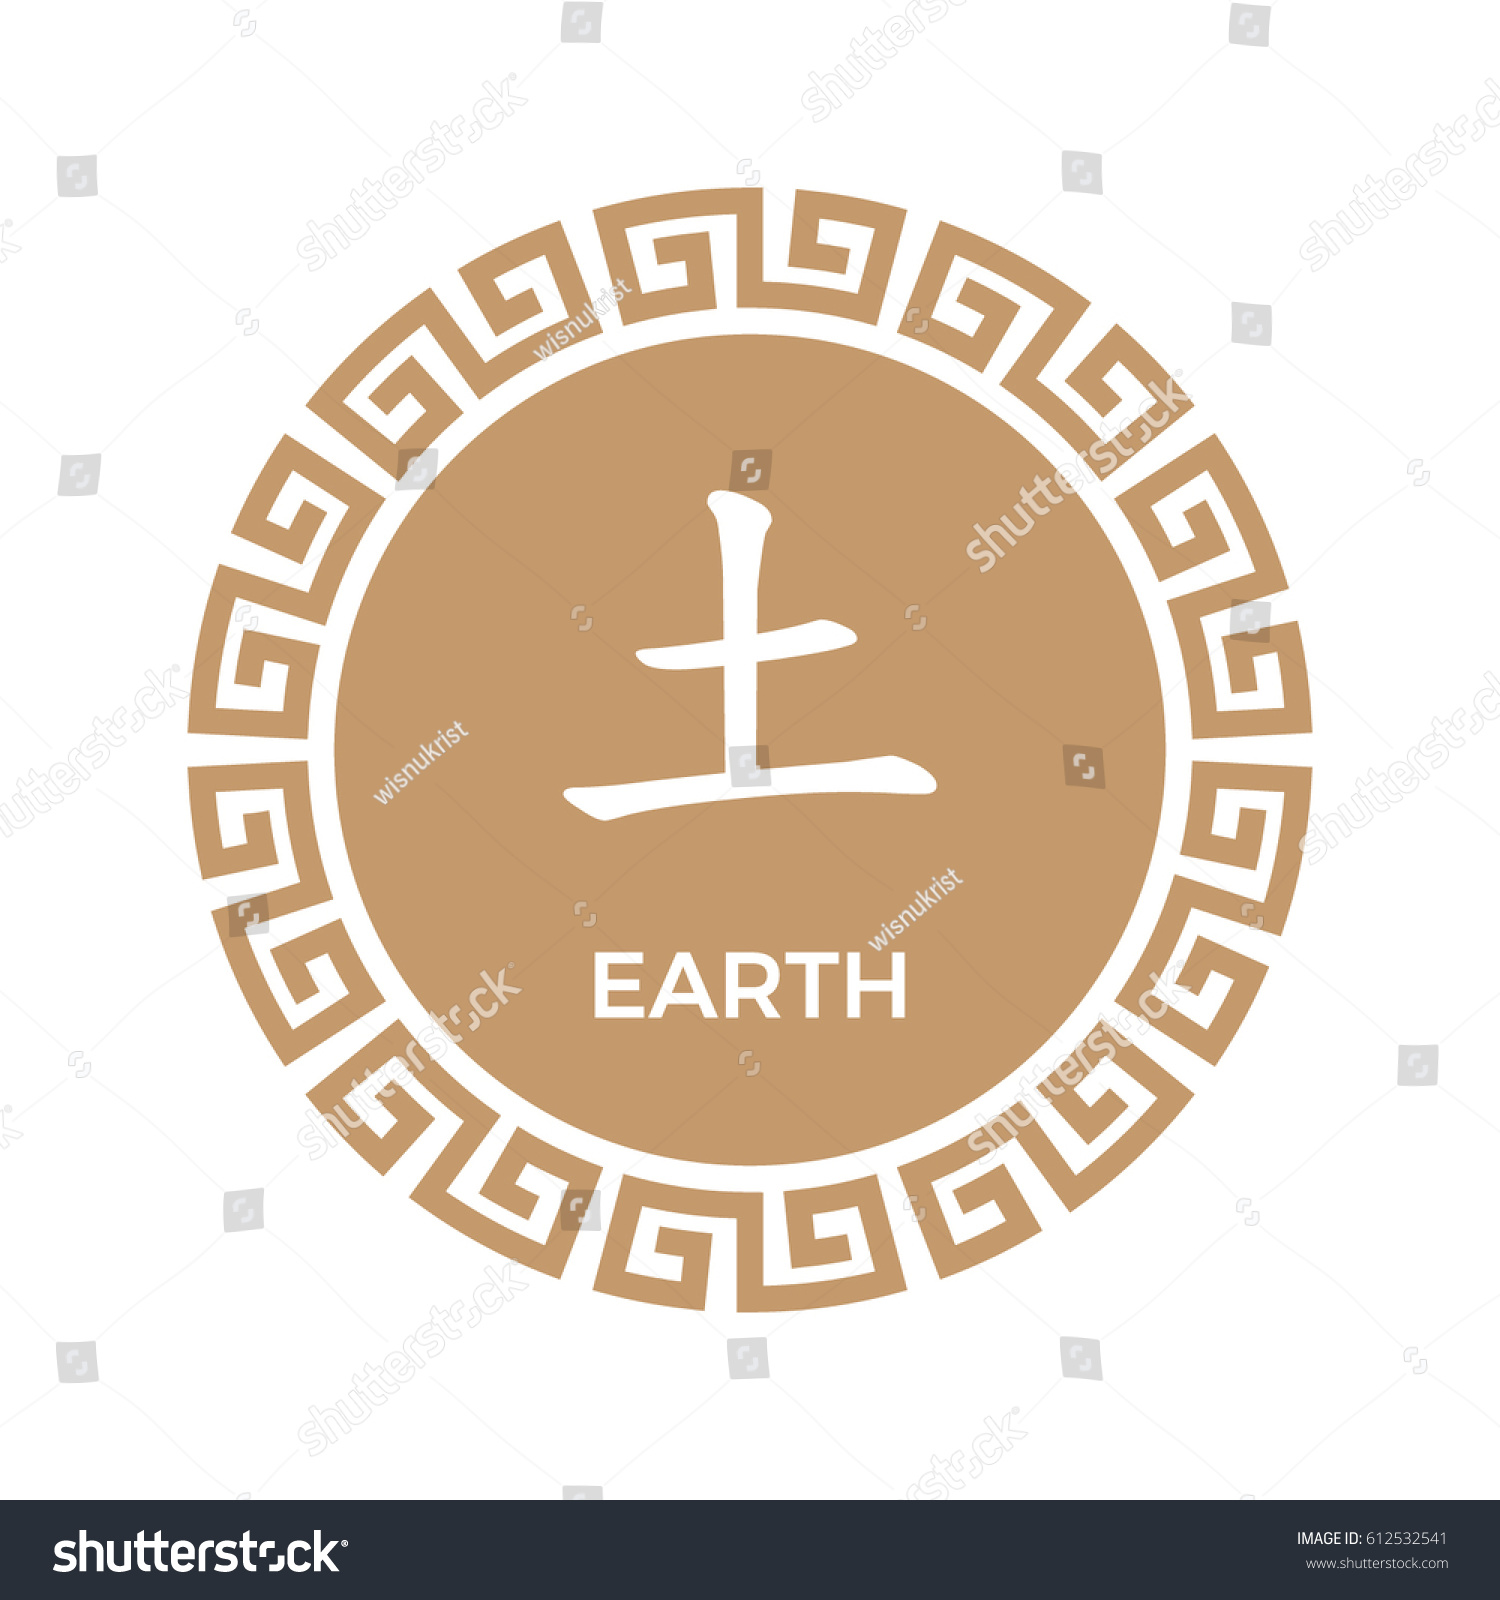 Earth Element Symbol Chinese Border Stock Vector Royalty Free